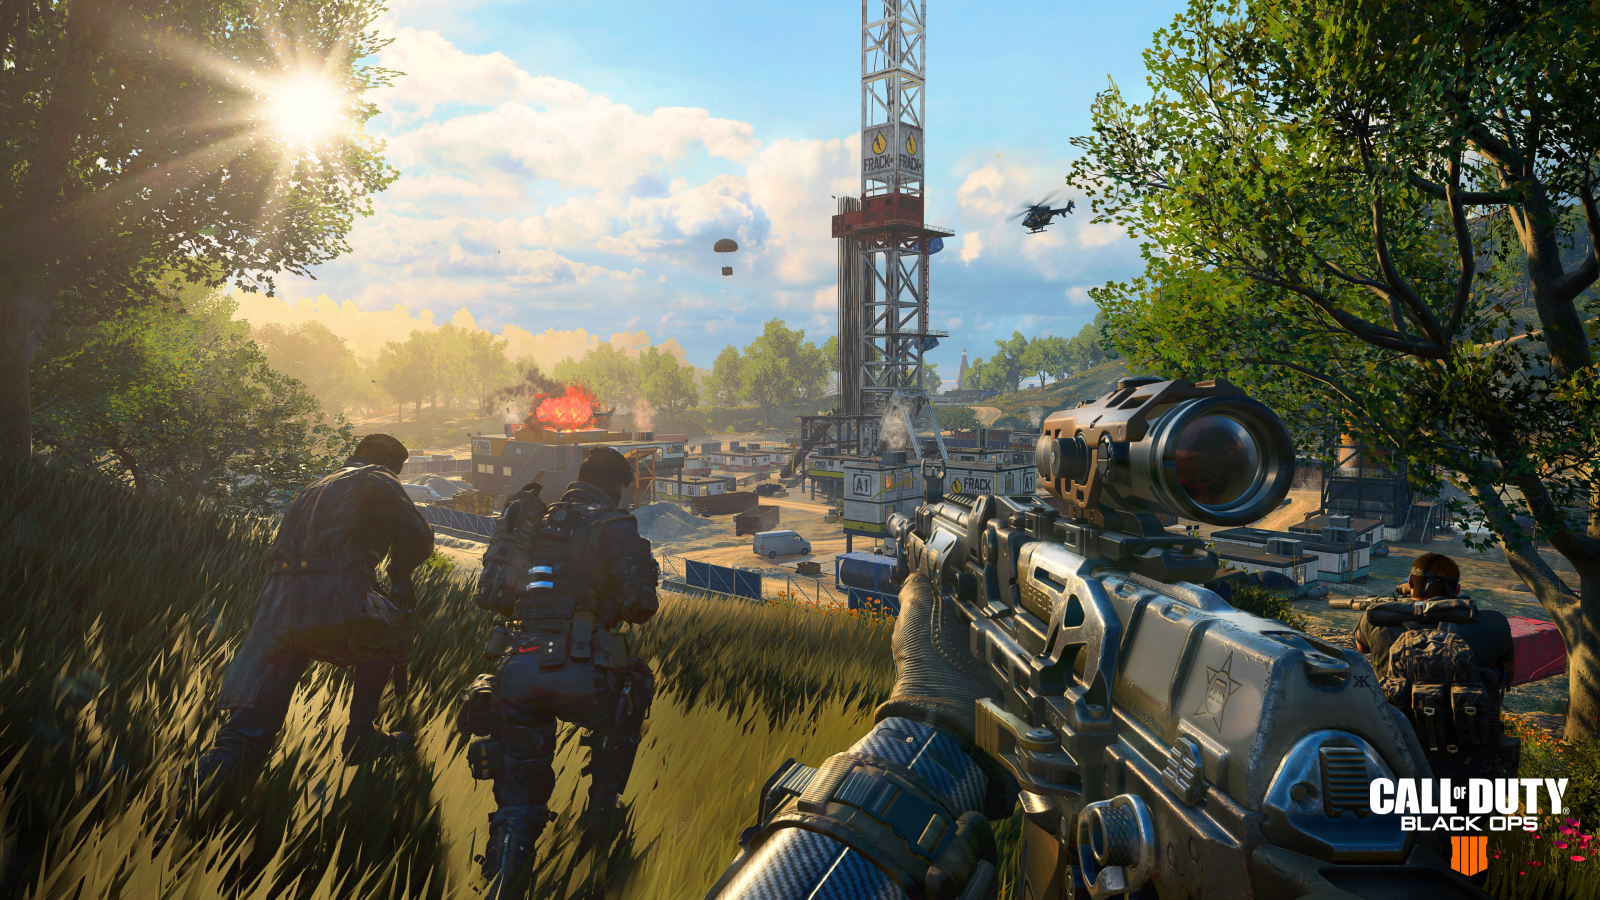 Call Of Duty Black Ops 4 Takes On Fortnite In The Battle Royale Game Genre Quartz